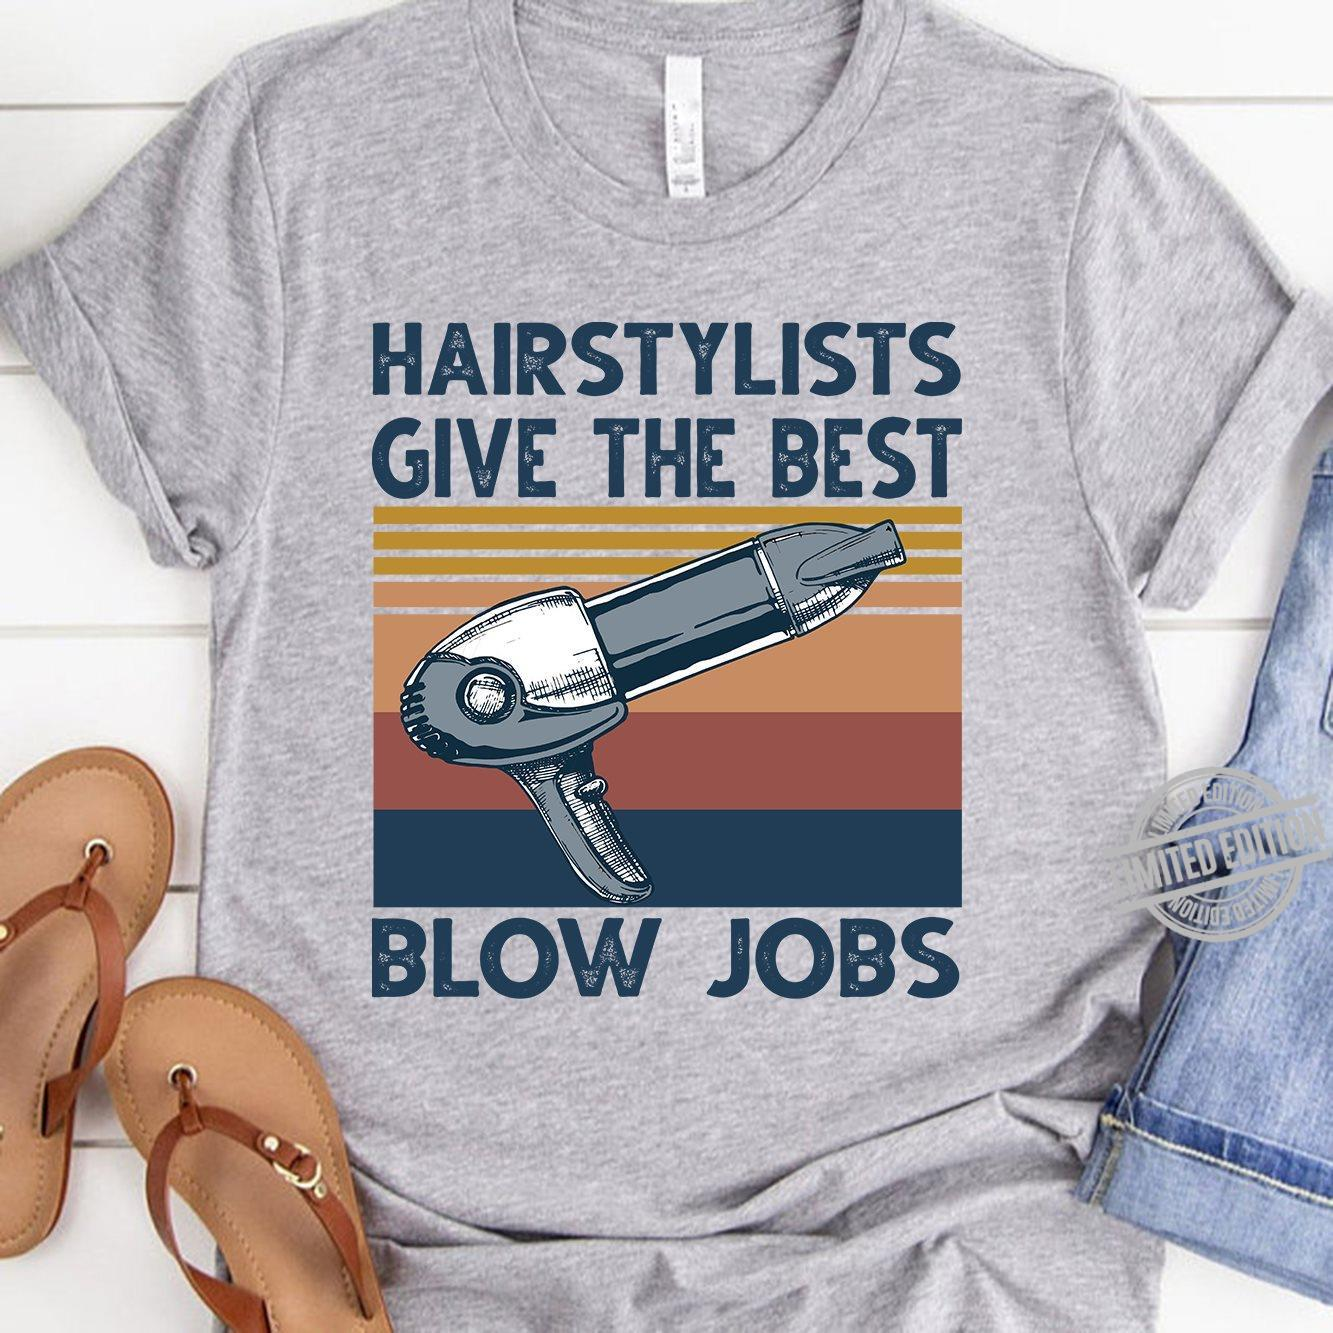 Hairstylists Give The Best Blow Jobs Shirt